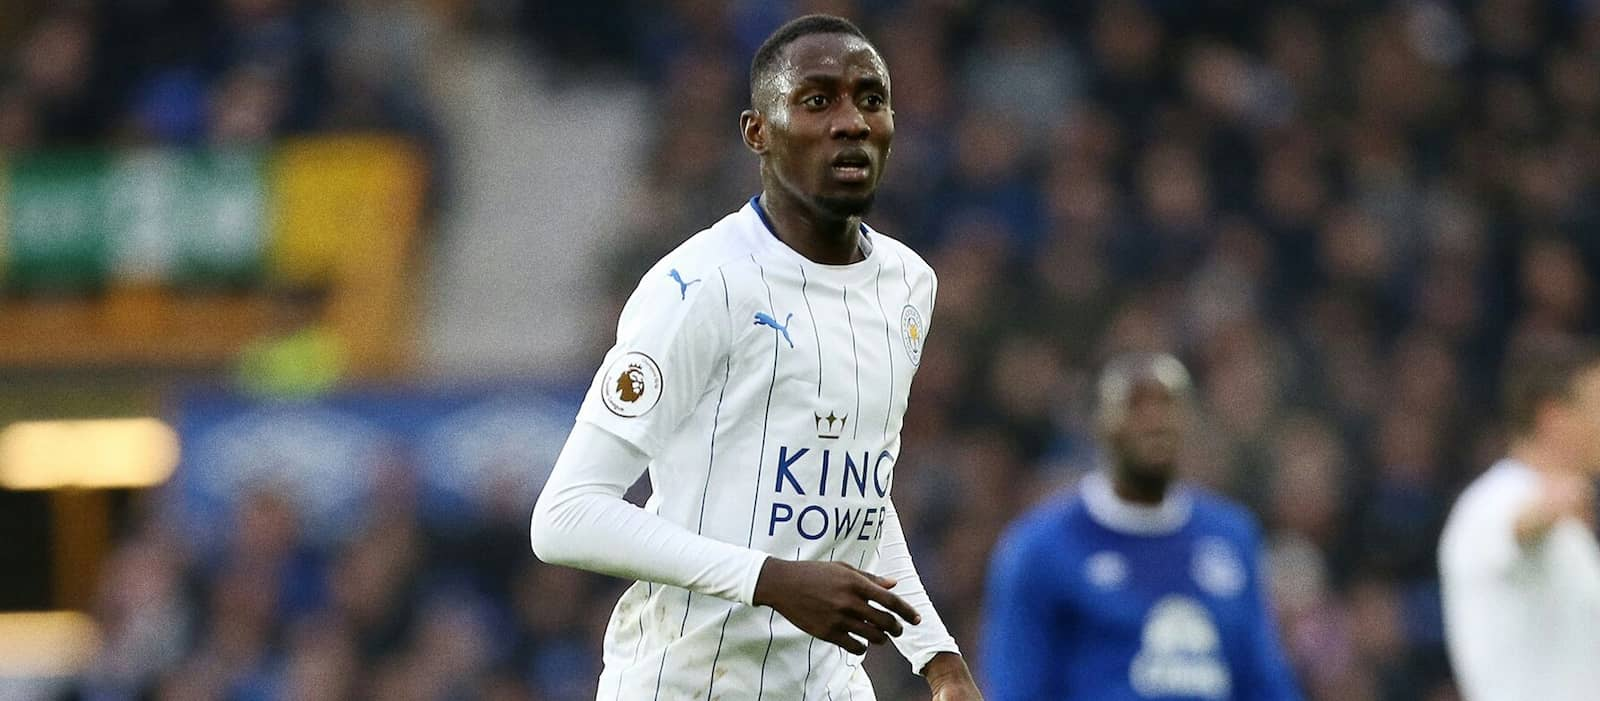 Leicester City midfielder Wilfred Ndidi would ask for a transfer to Manchester United – agent